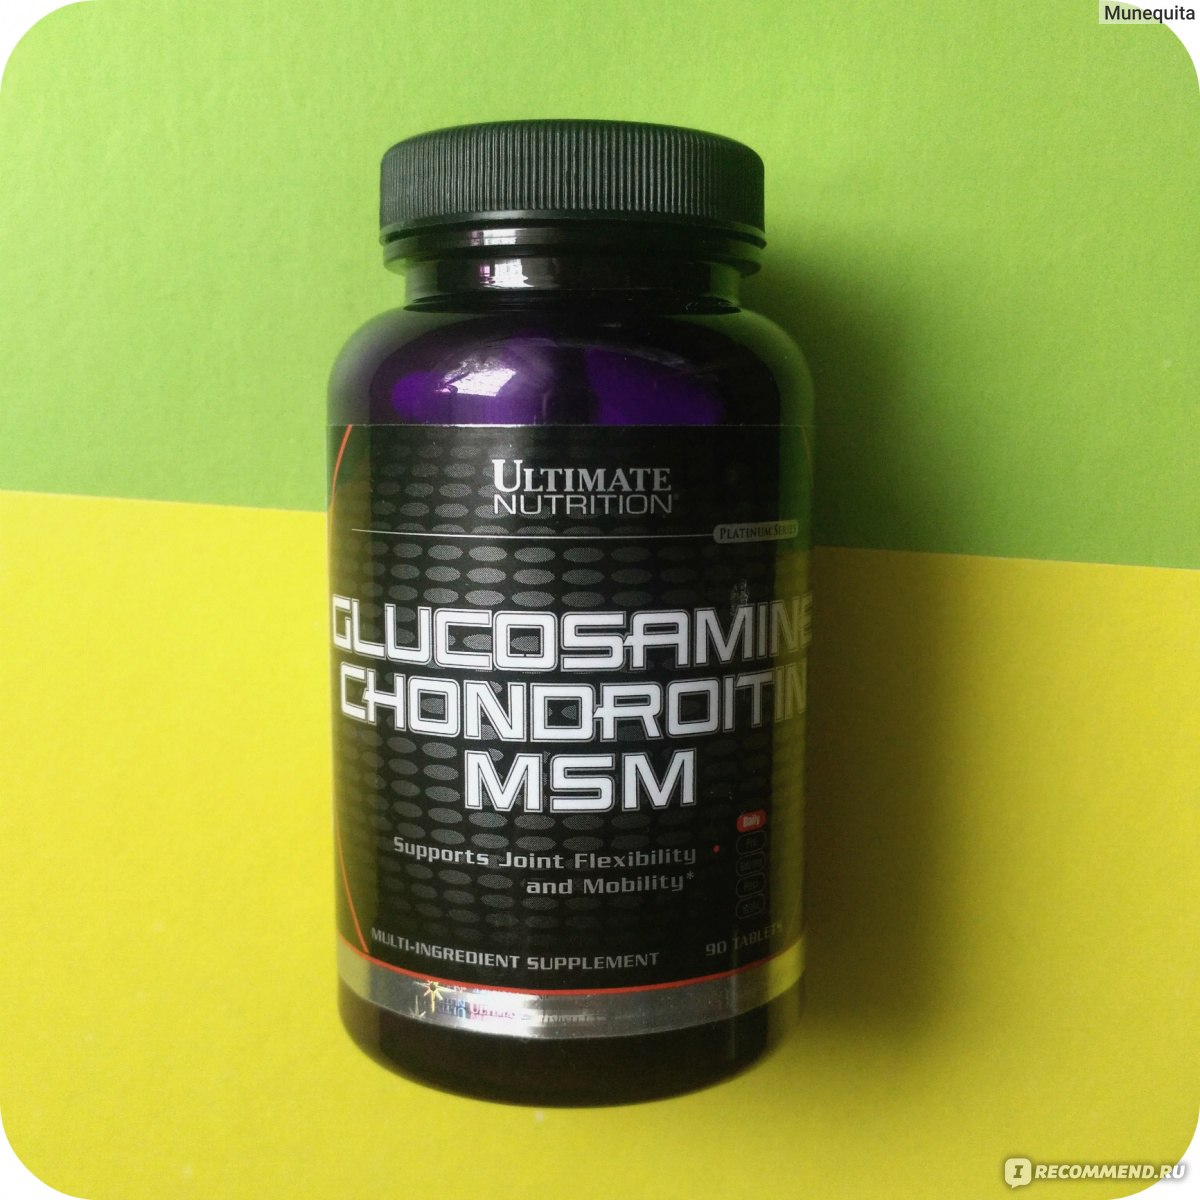 90 tabs Source · Glucosamine Chondroitin MSM Ultimate Nutrition .